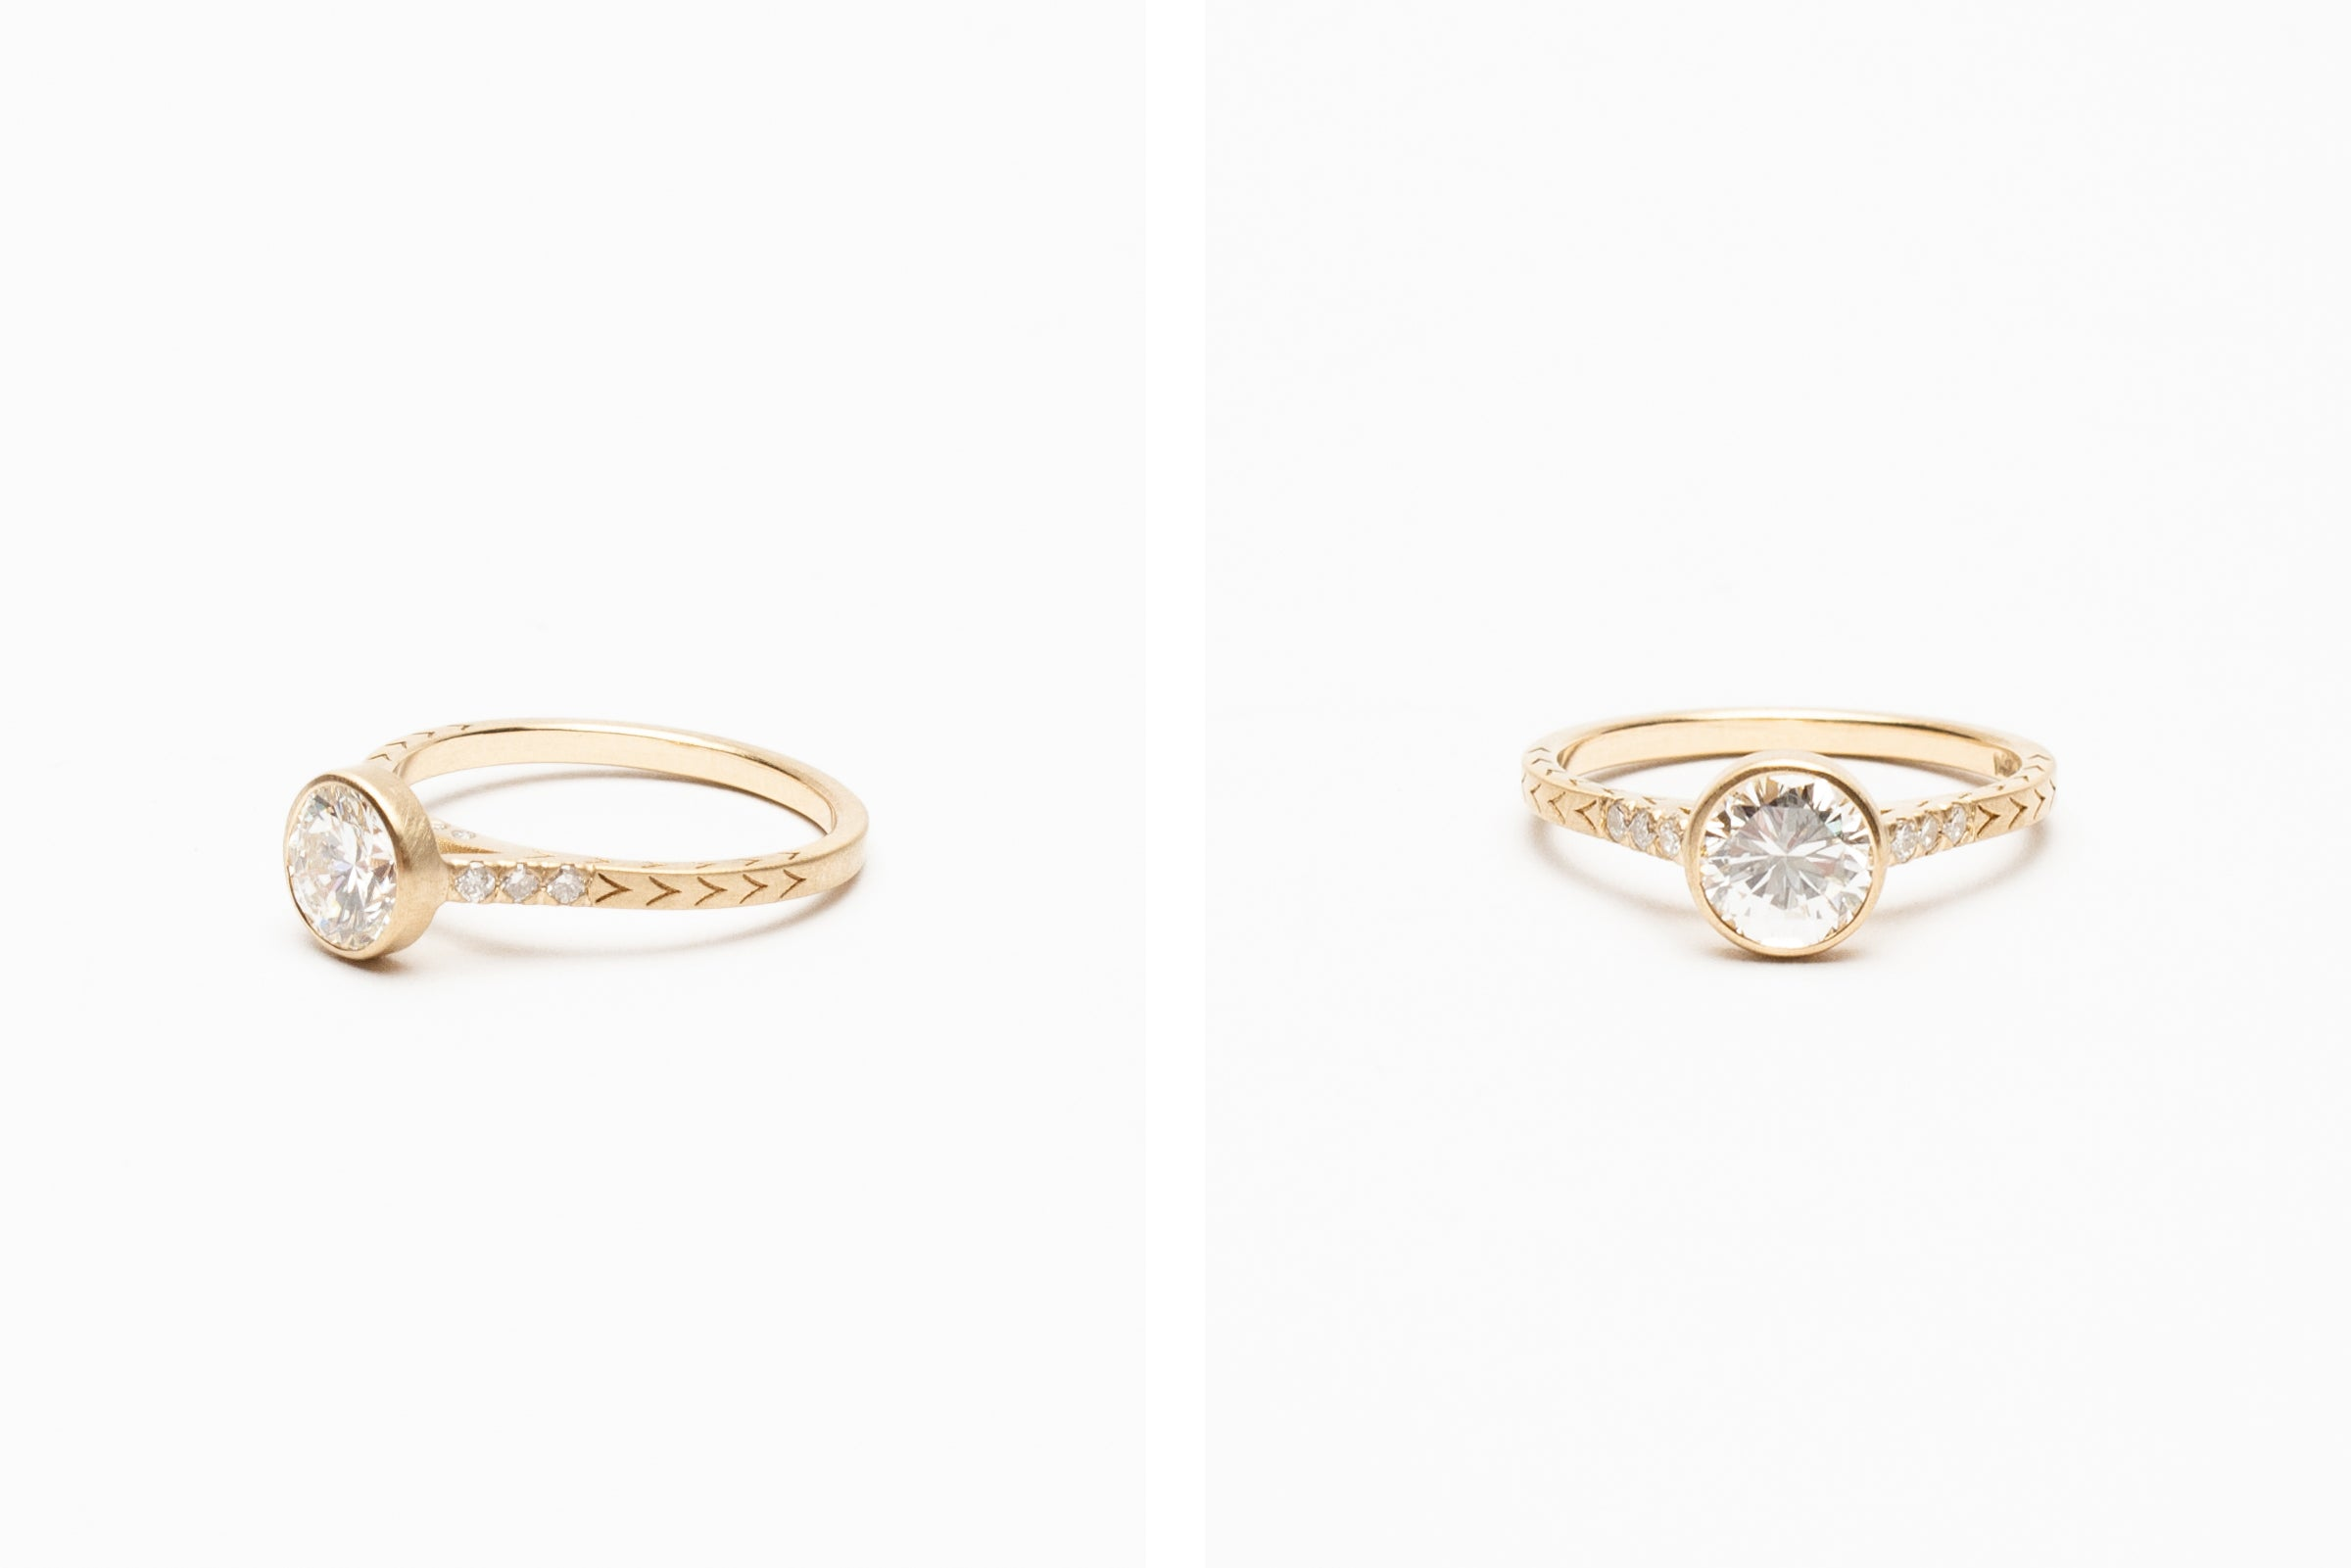 Betsy & Iya Custom ring with round diamonds and engravings